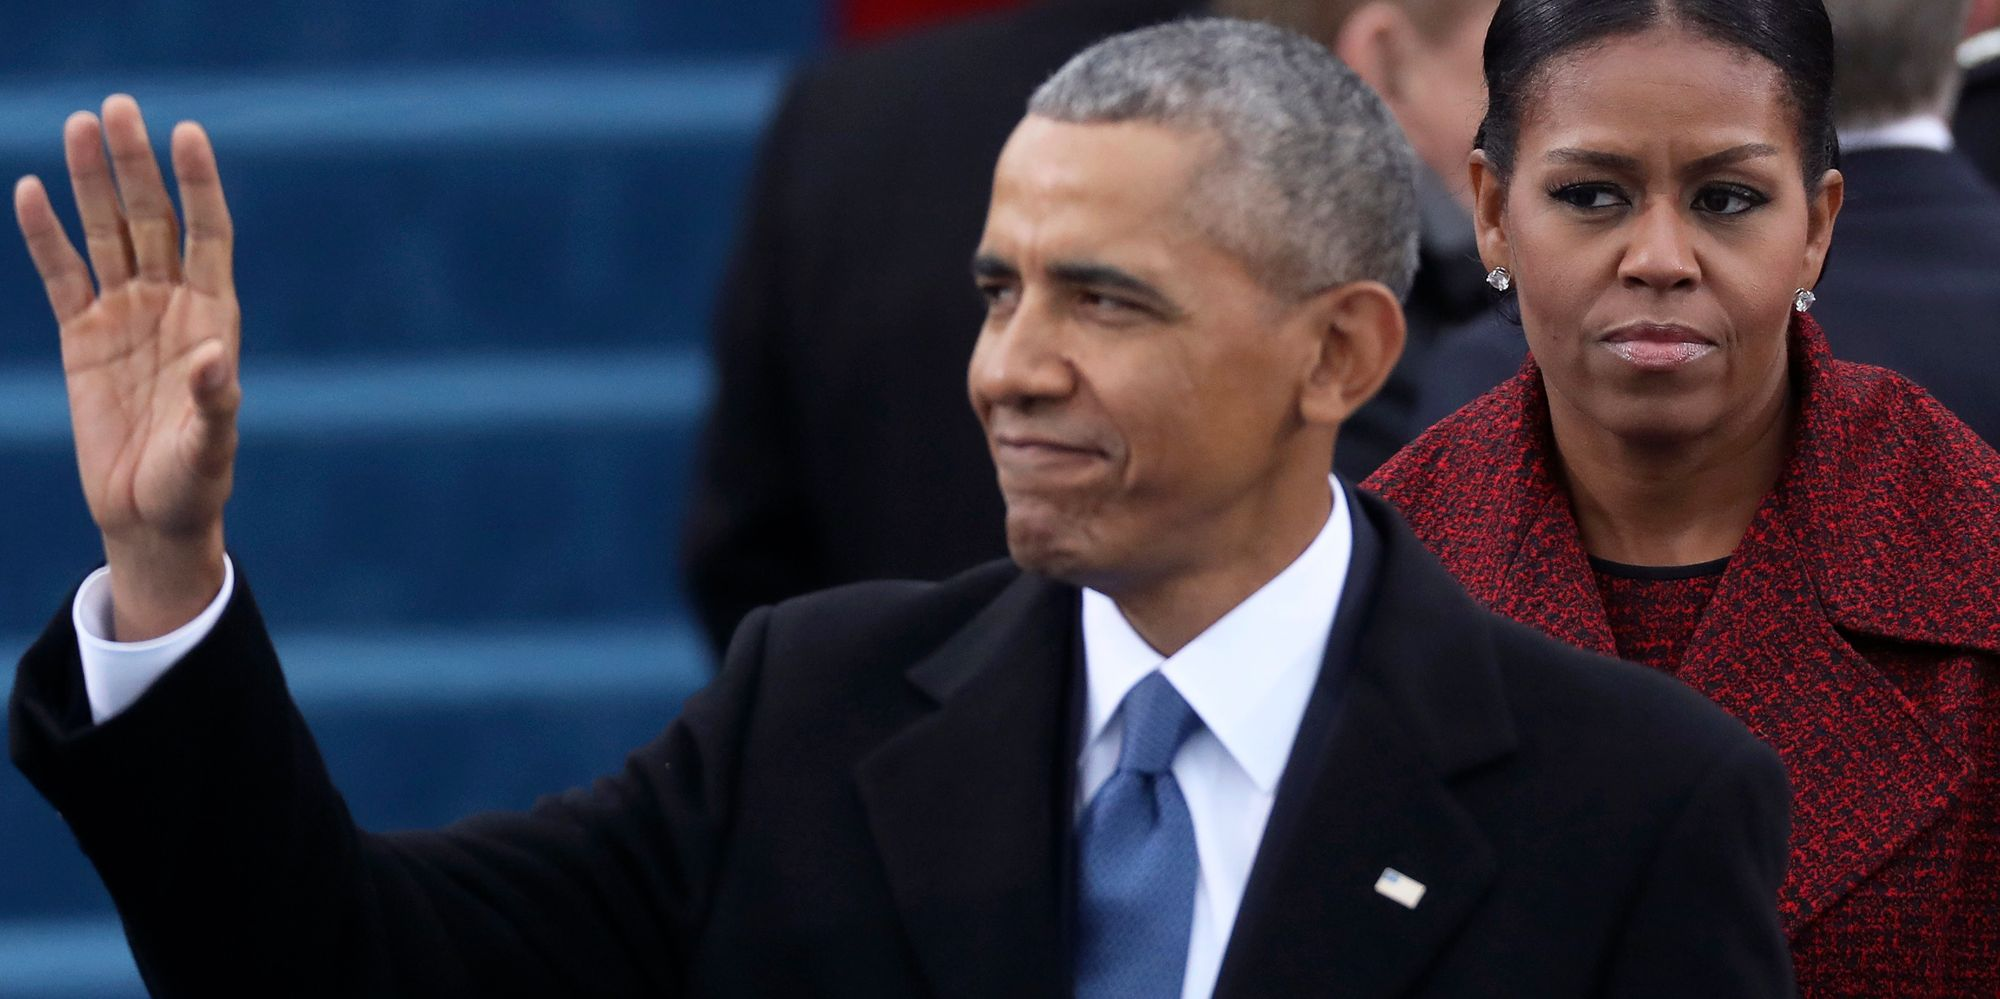 Obama Makes First Major Appearance Since Leaving The White House